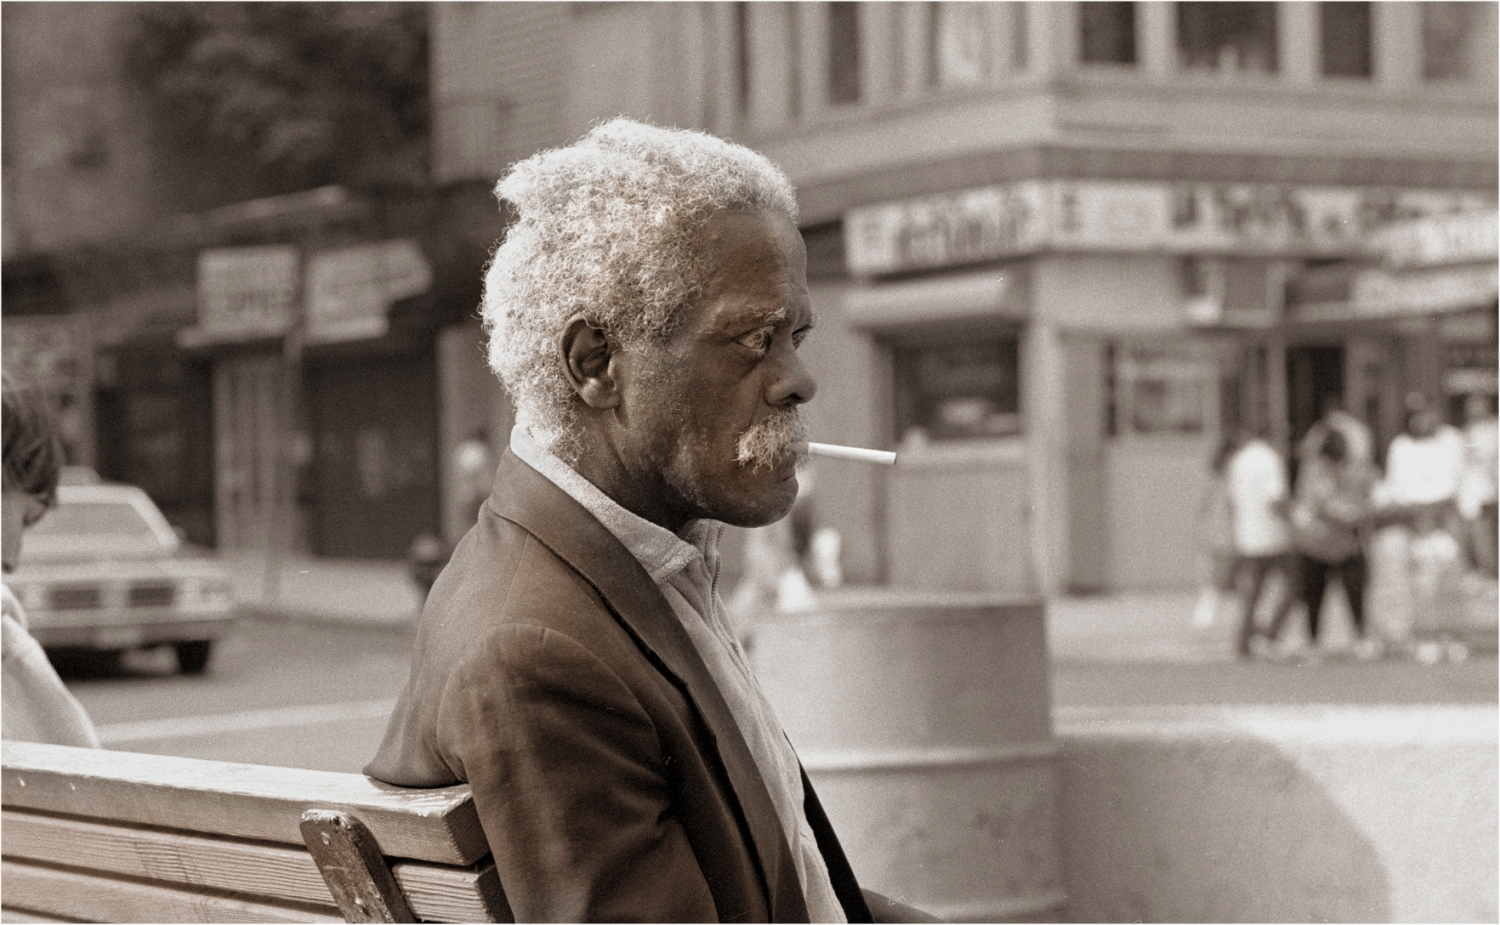 OLd-BlackMan-Smoking-100th-st copy